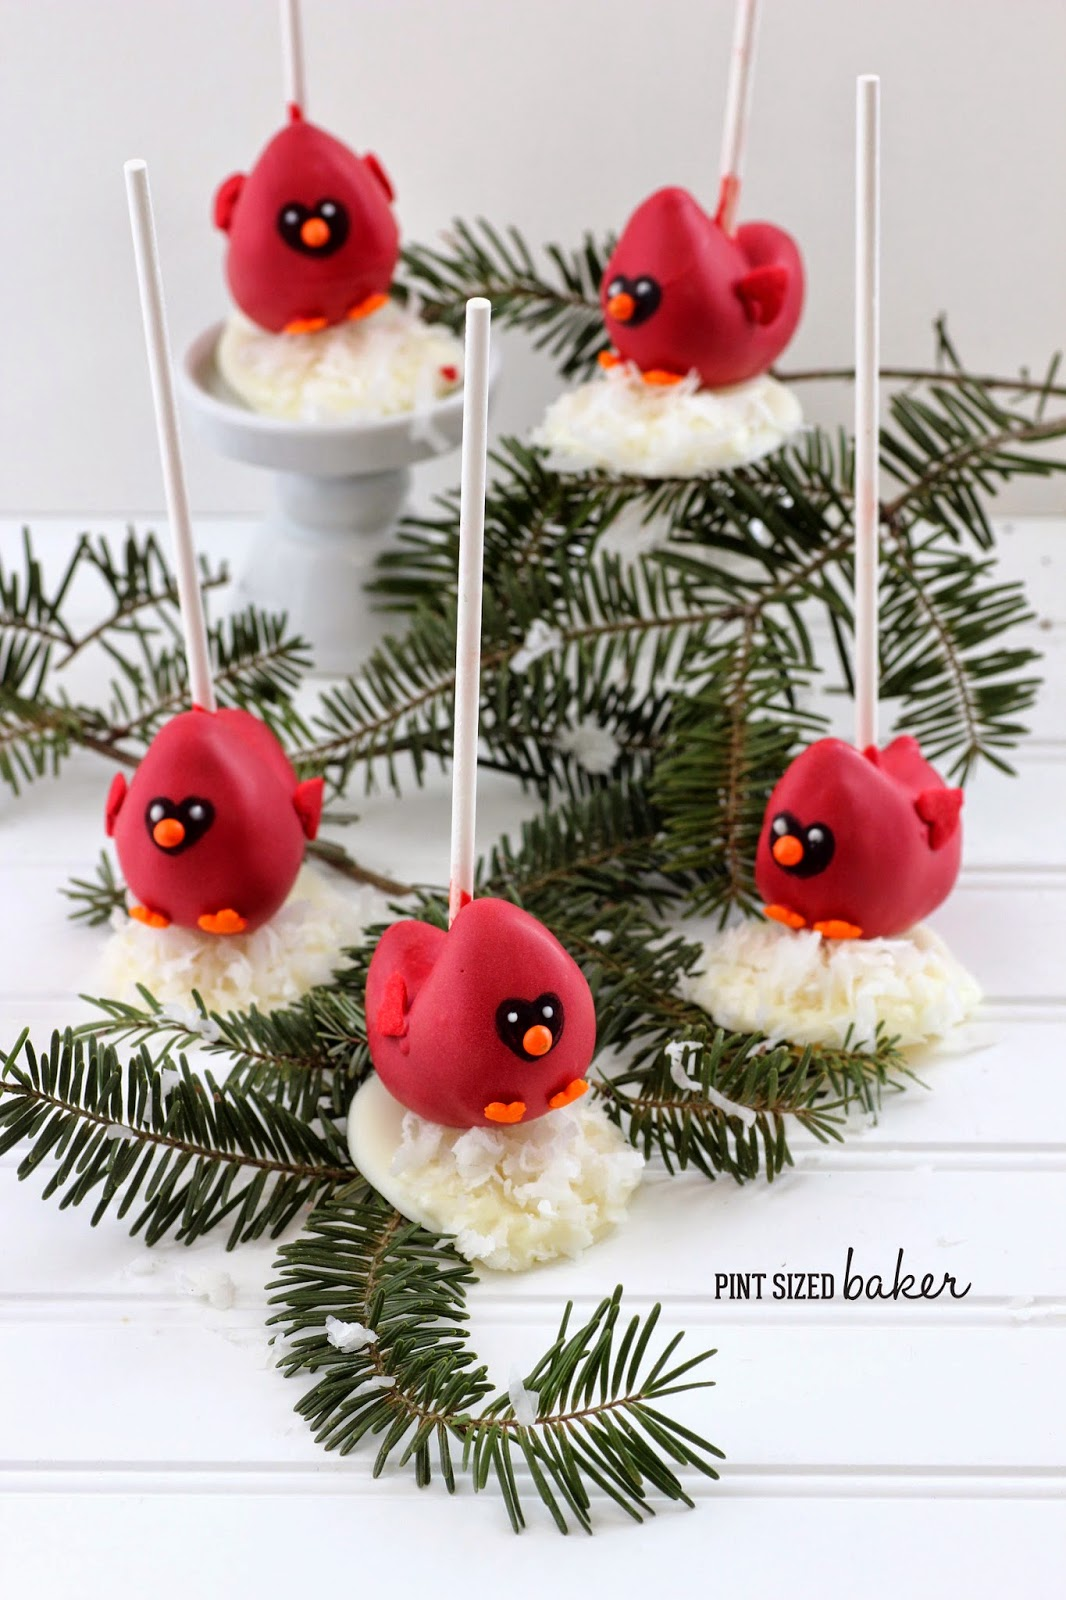 Cardinal Cake Pop Tutorial from Pint Sized Baker